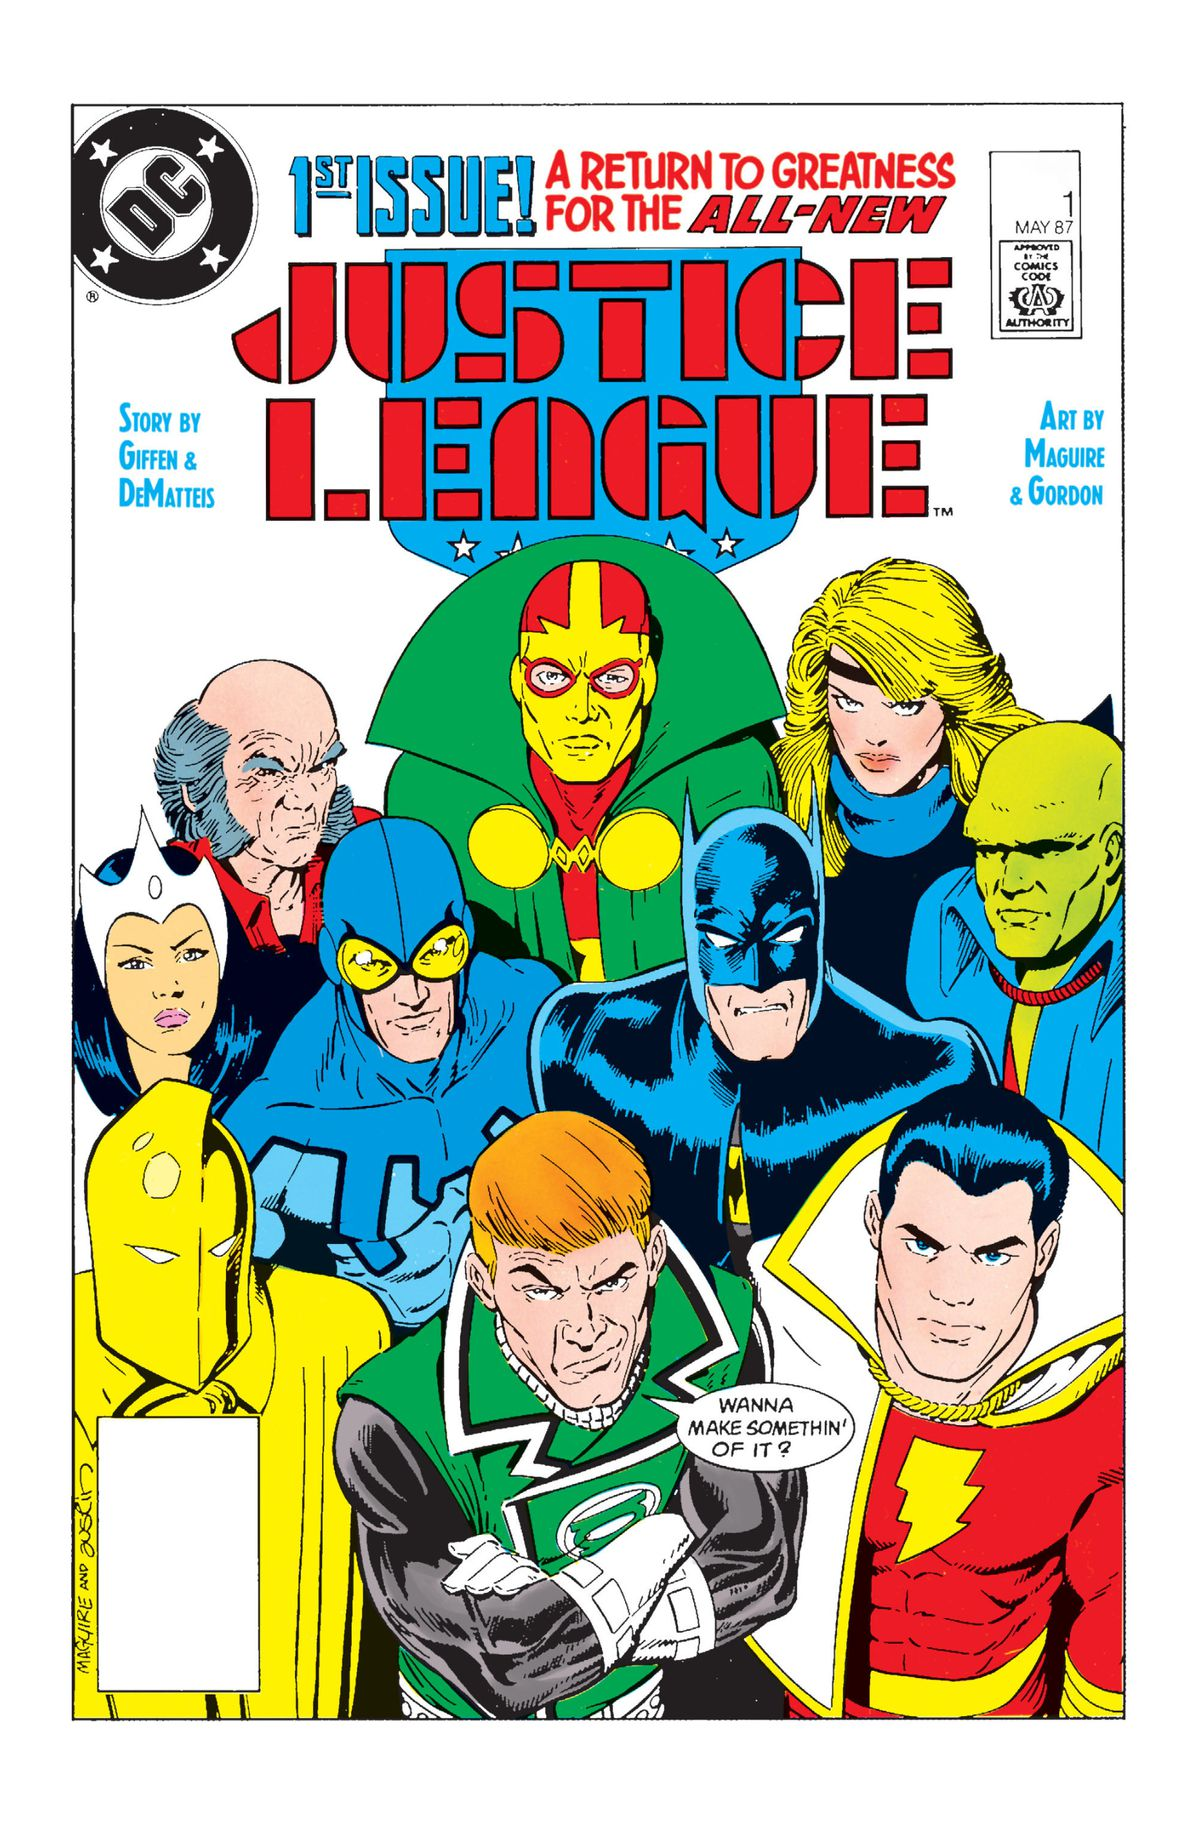 """The Justice League, comprised of mainly 2nd and 3rd stringers, sneers at the camera as Guy Gardner/Green Lantern says """"Wanna make somethin' of it?"""" on the cover of Justice League #1, DC Comics (1987)."""